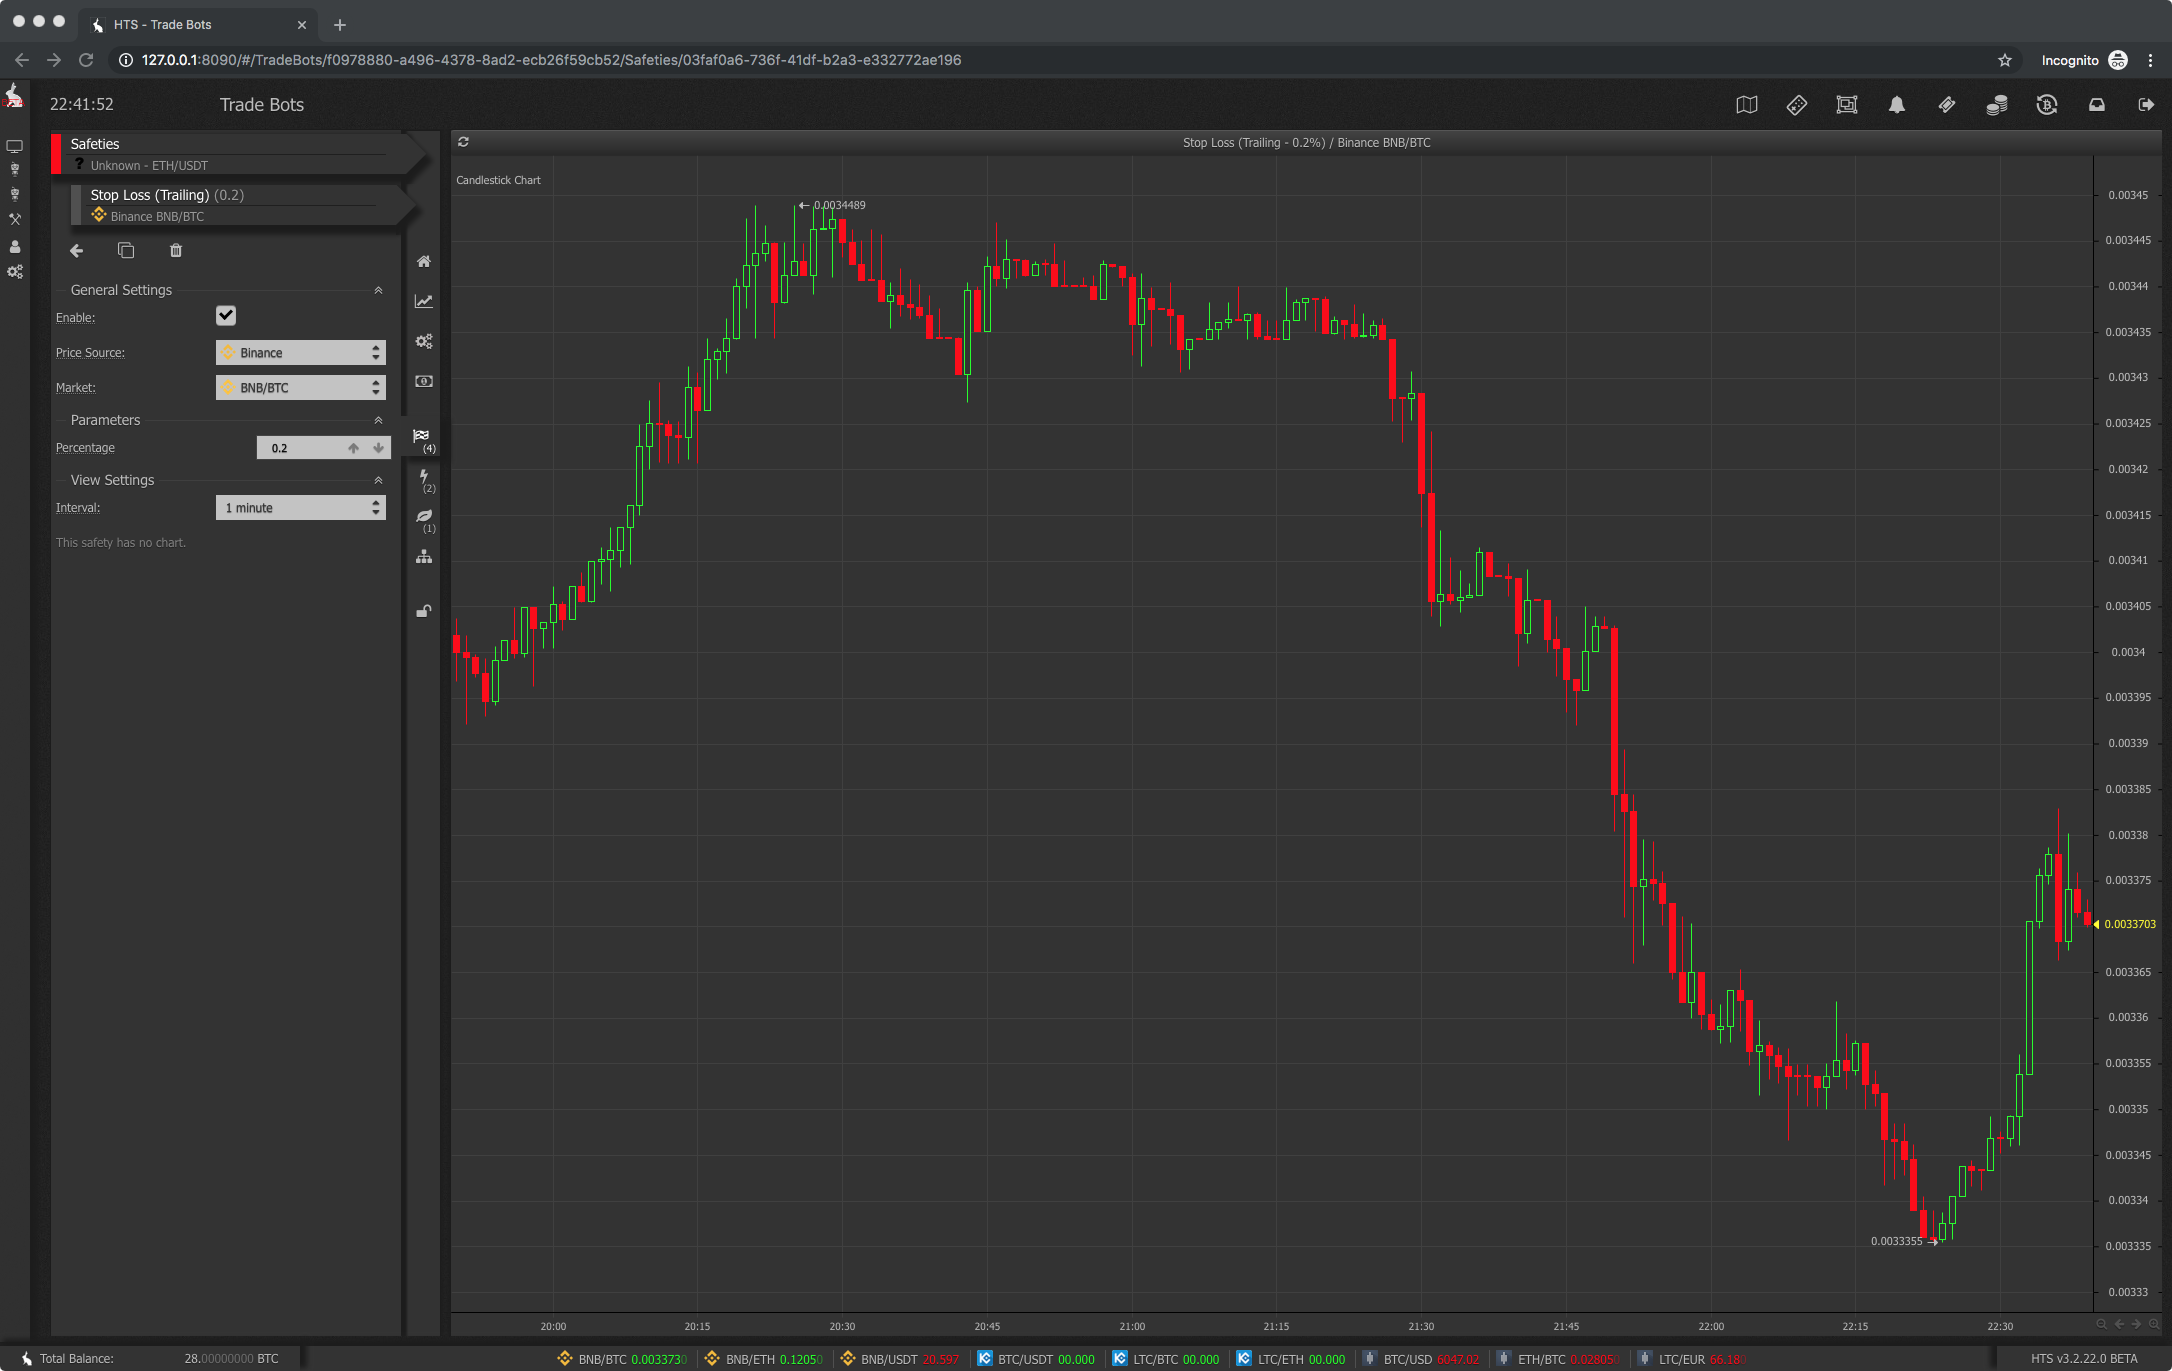 Trailing stop loss haasbot safety